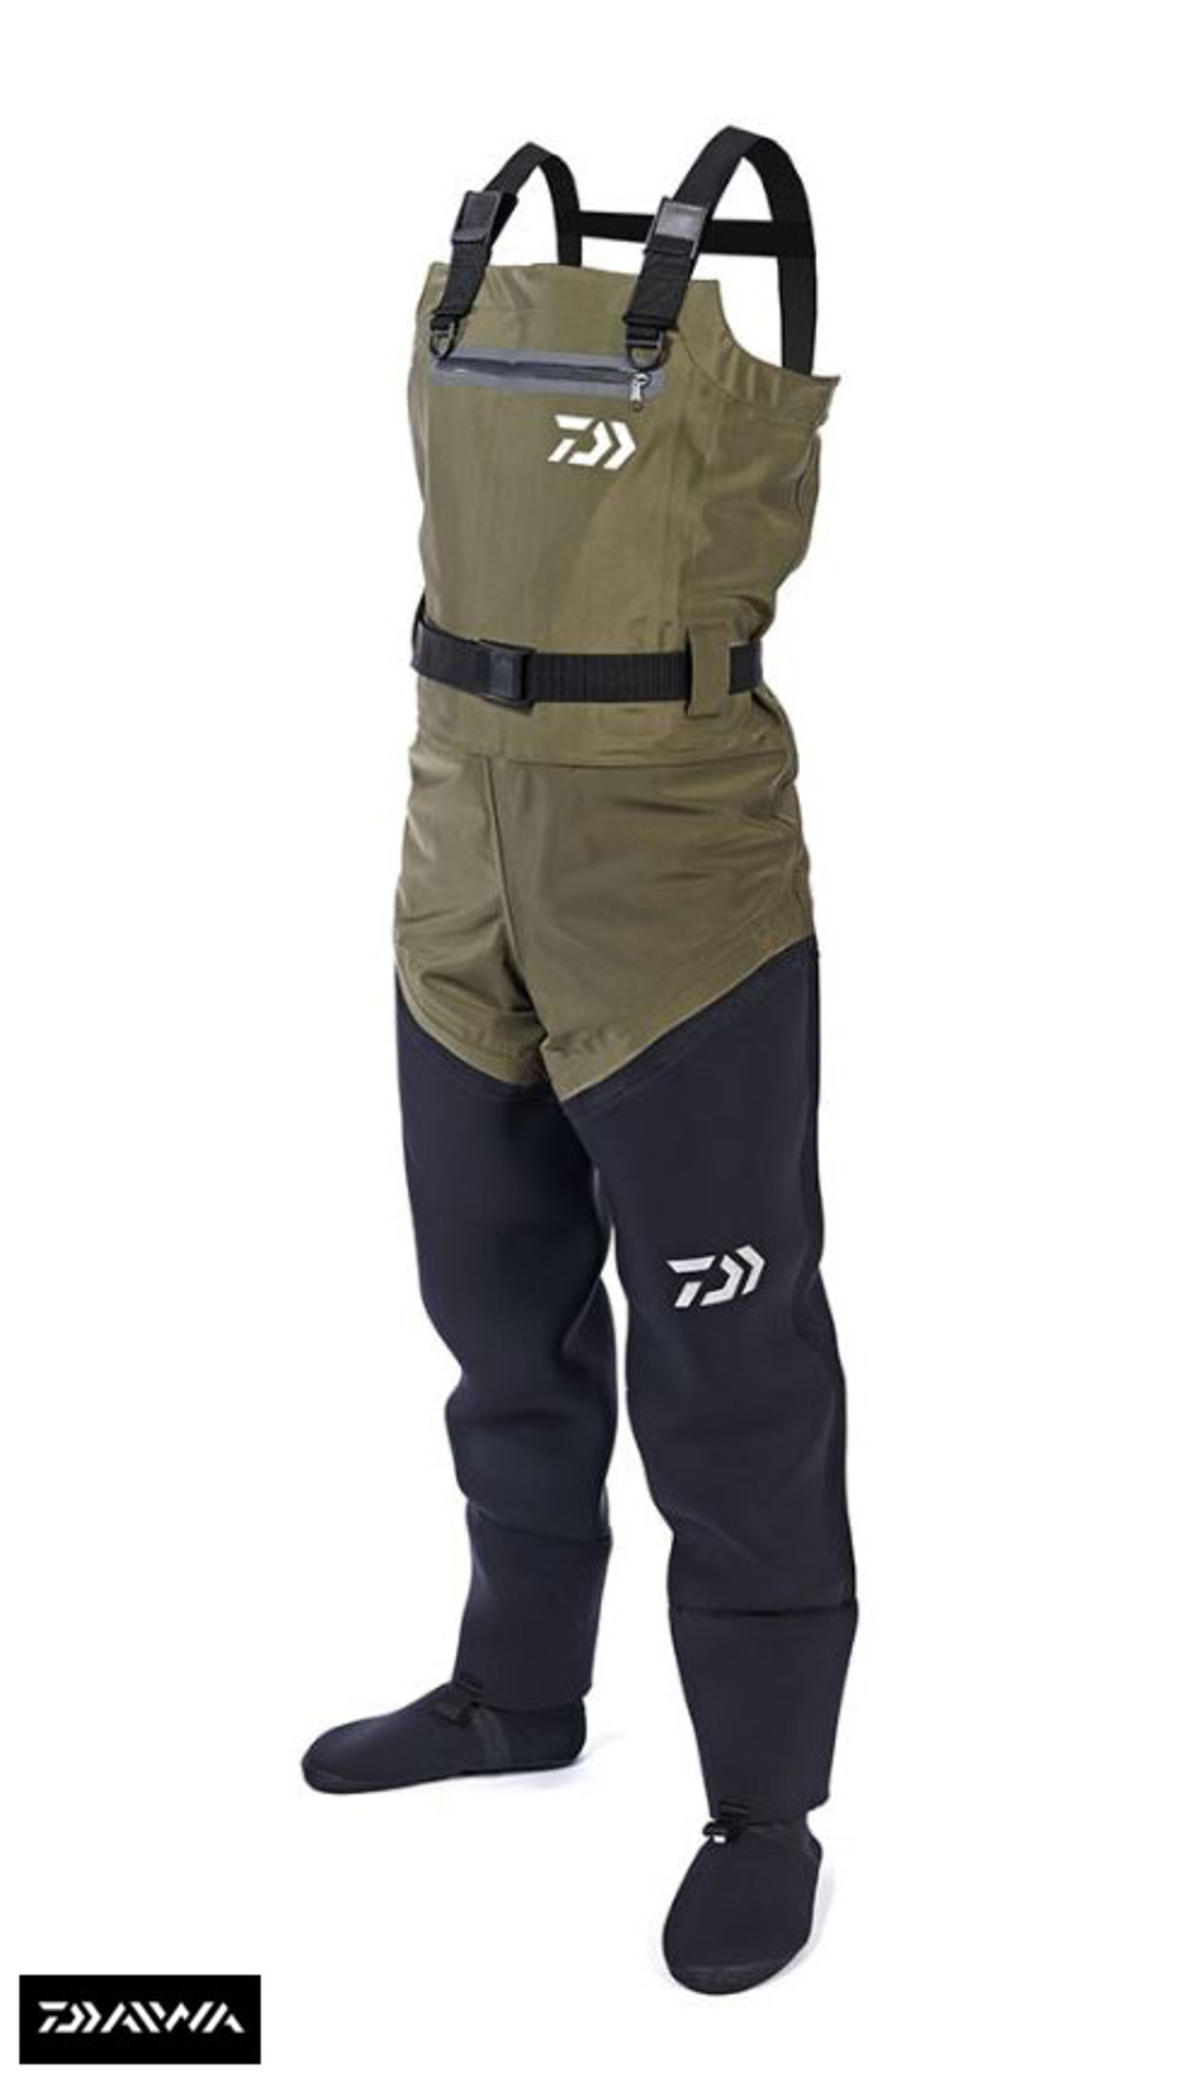 New Daiwa Hybrid 4 Stretch Breathable / Neoprene 4S Chest Waders - All Sizes